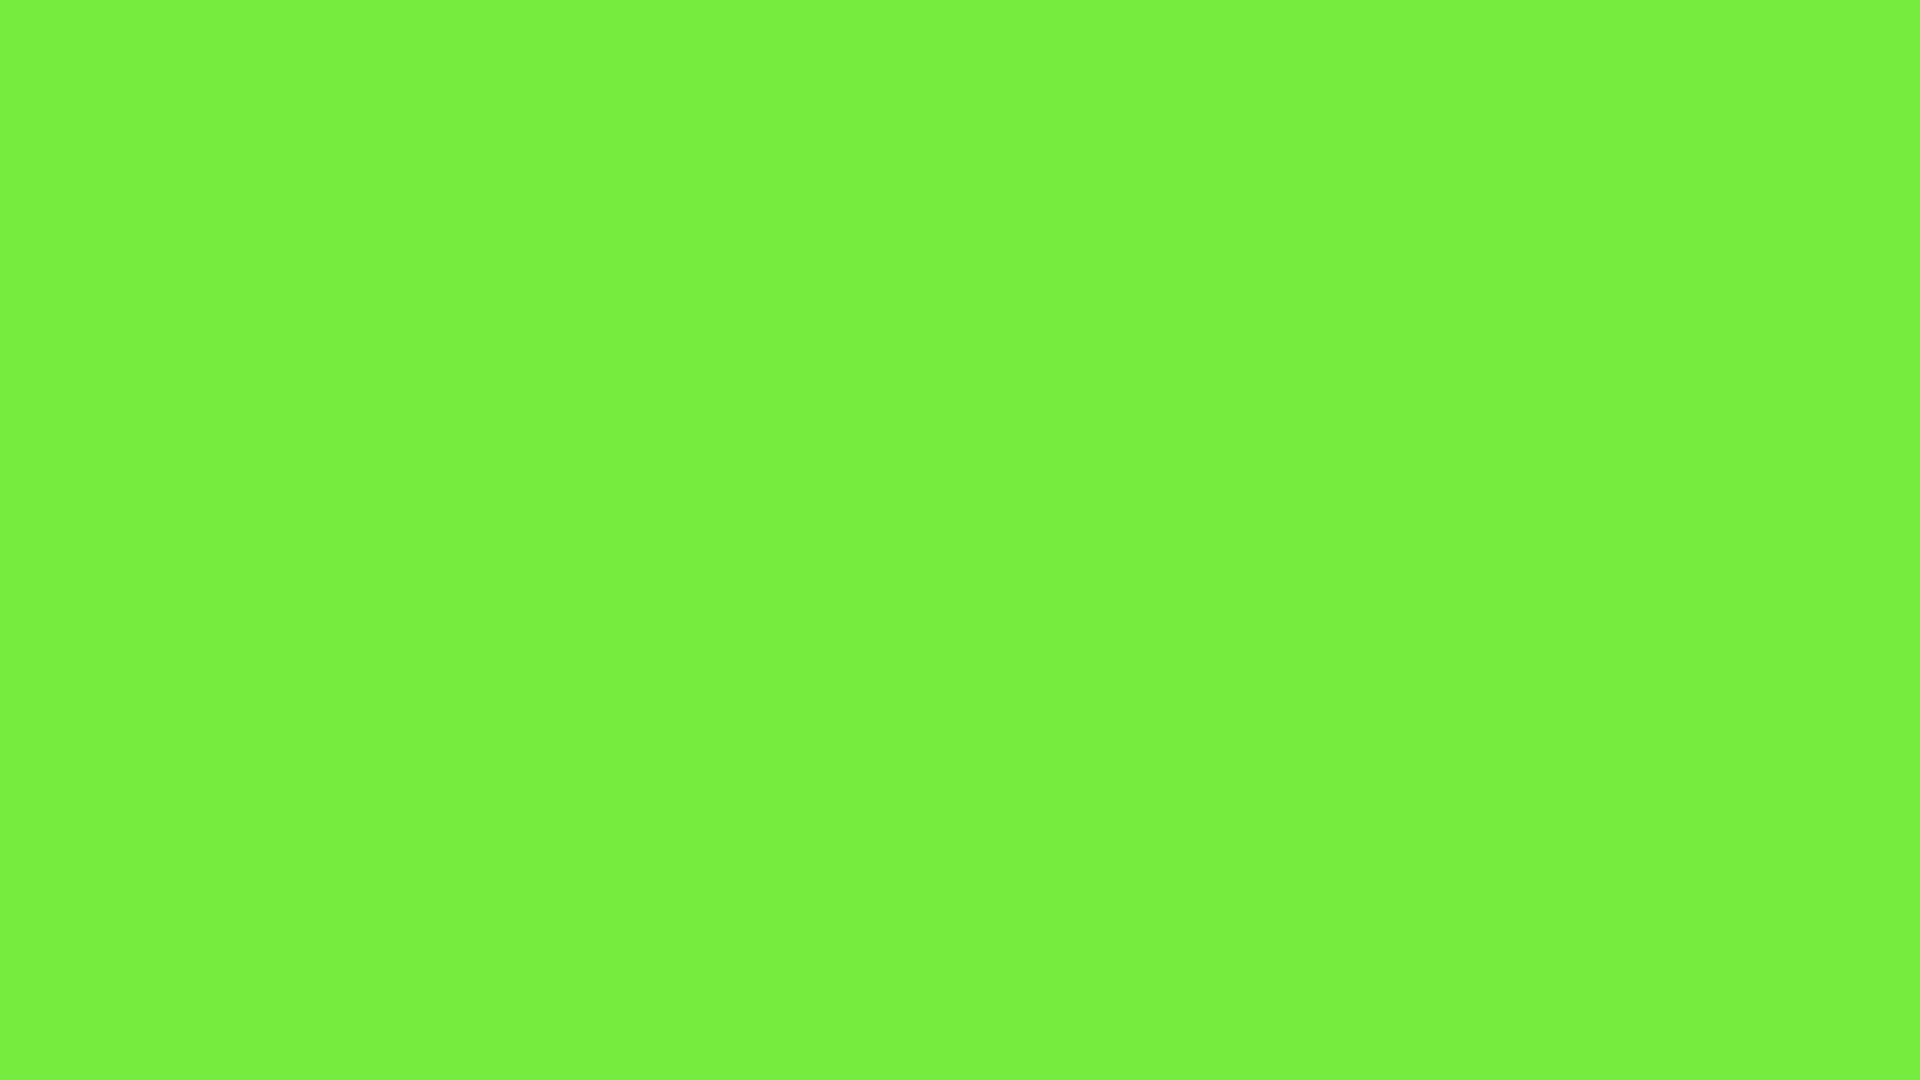 Light Lime Green Color